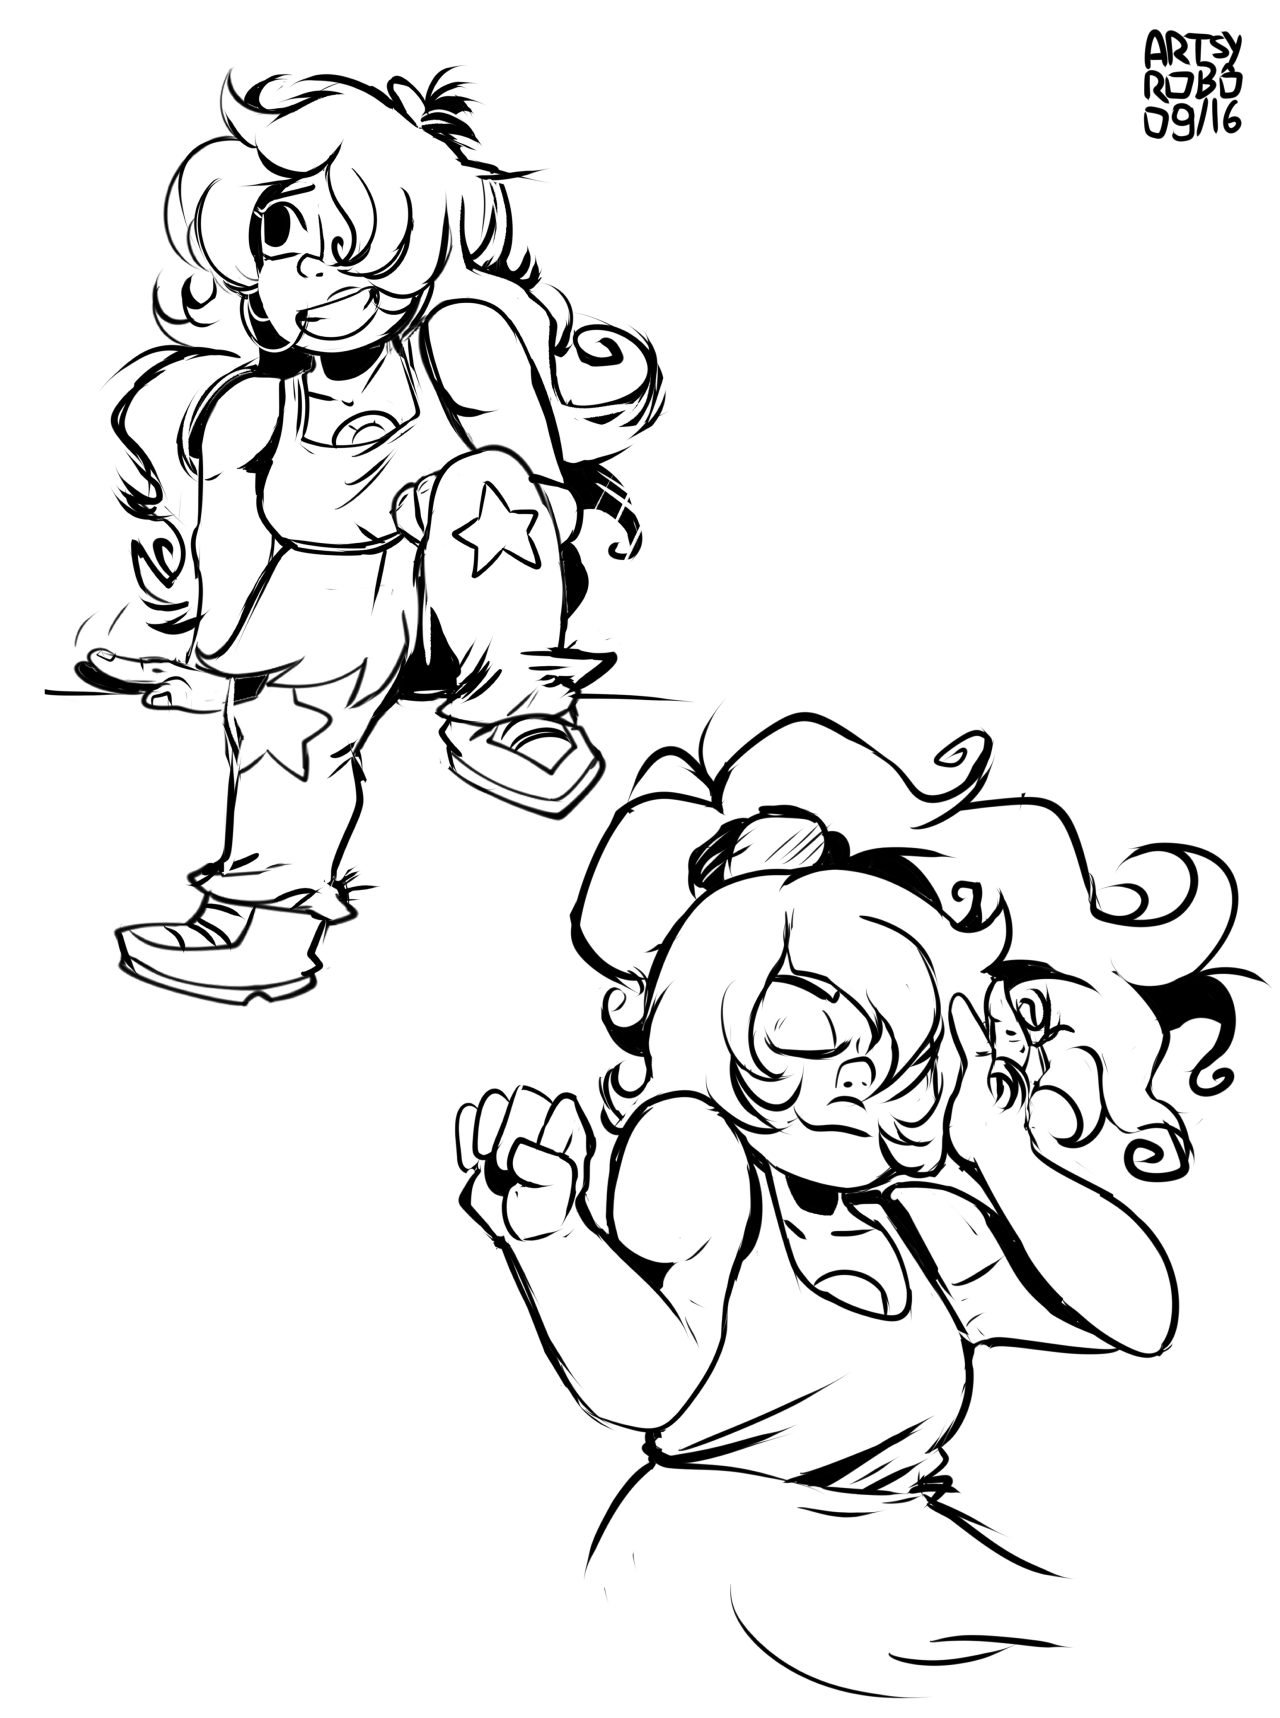 Some doodles of my two favorite SU characters… I'm really happy with it all turned out! Also a drawing of them hugging because I really needed it… Ugh I love them so much Probably gonna color it all...